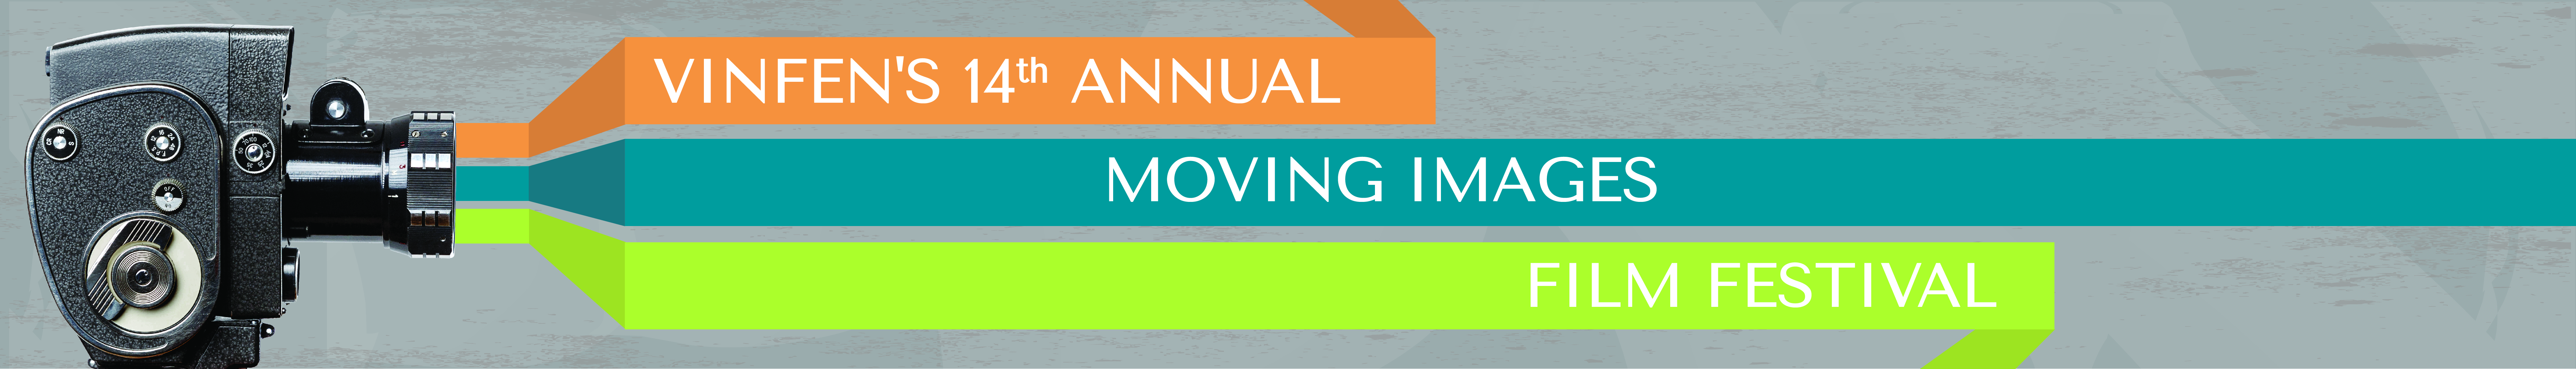 Vinfen's 14th Annual Moving Images Film Festival